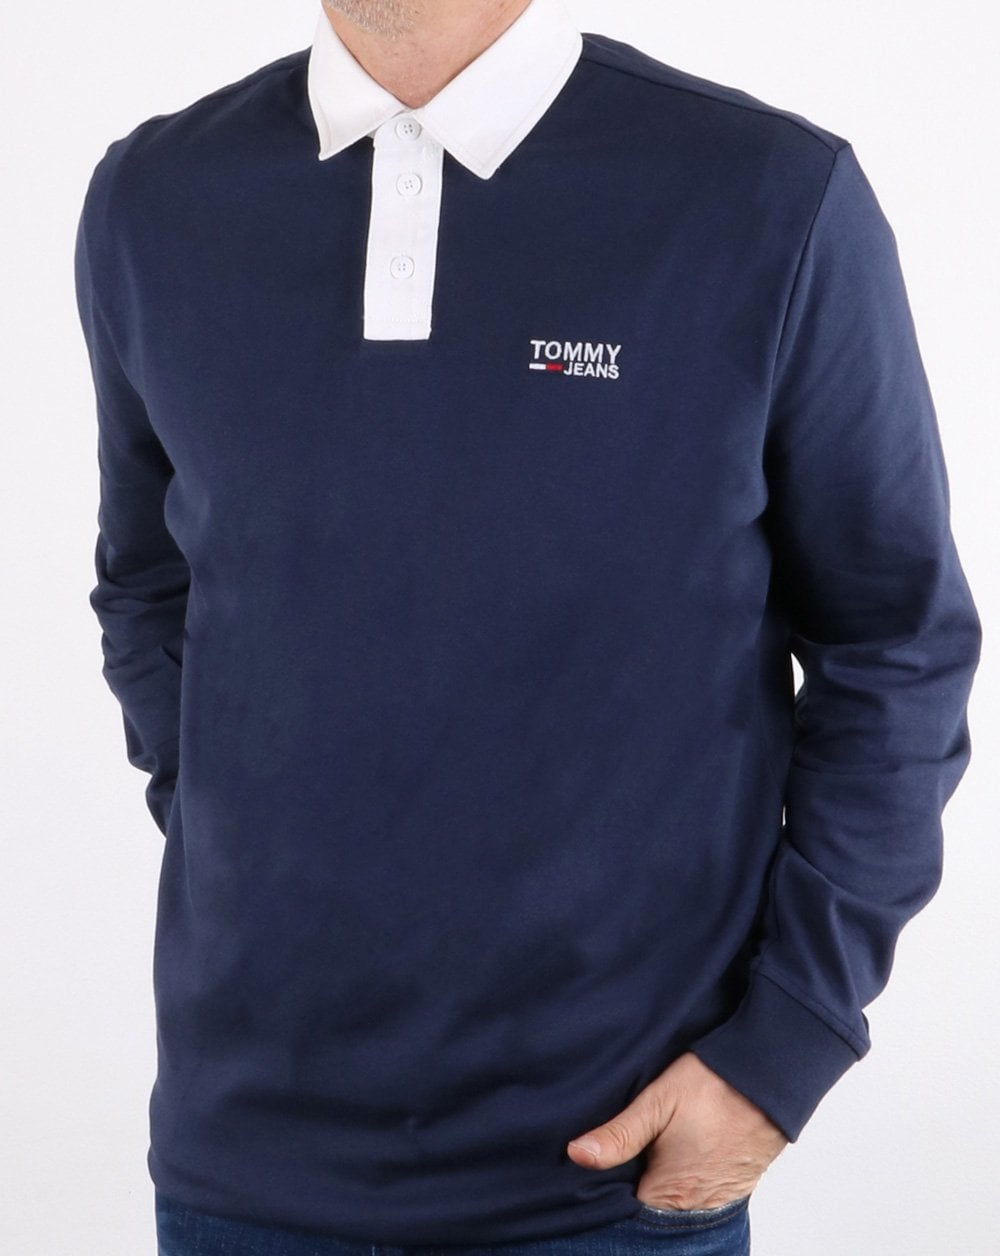 8b91043c85e Tommy Hilfiger Essential Rugby Shirt Navy   80s casual classics